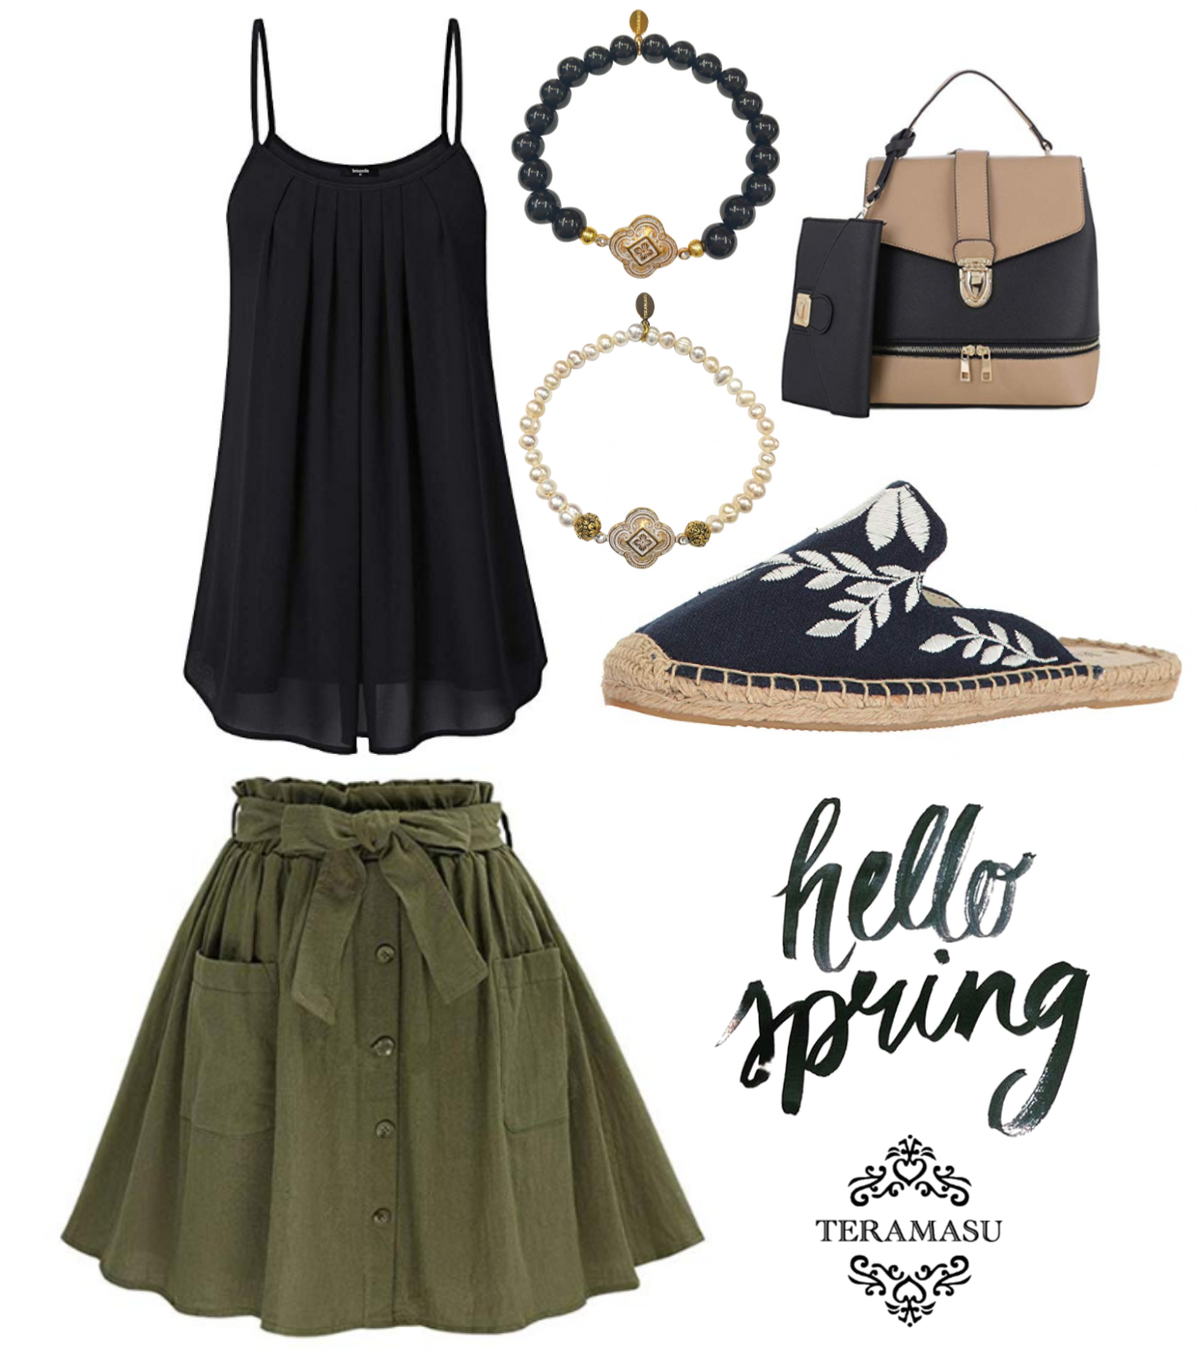 Living Ladylike: Bold Black and White Spring Outfit Inspiration for Your One-of-a-Kind Style from Teramasu